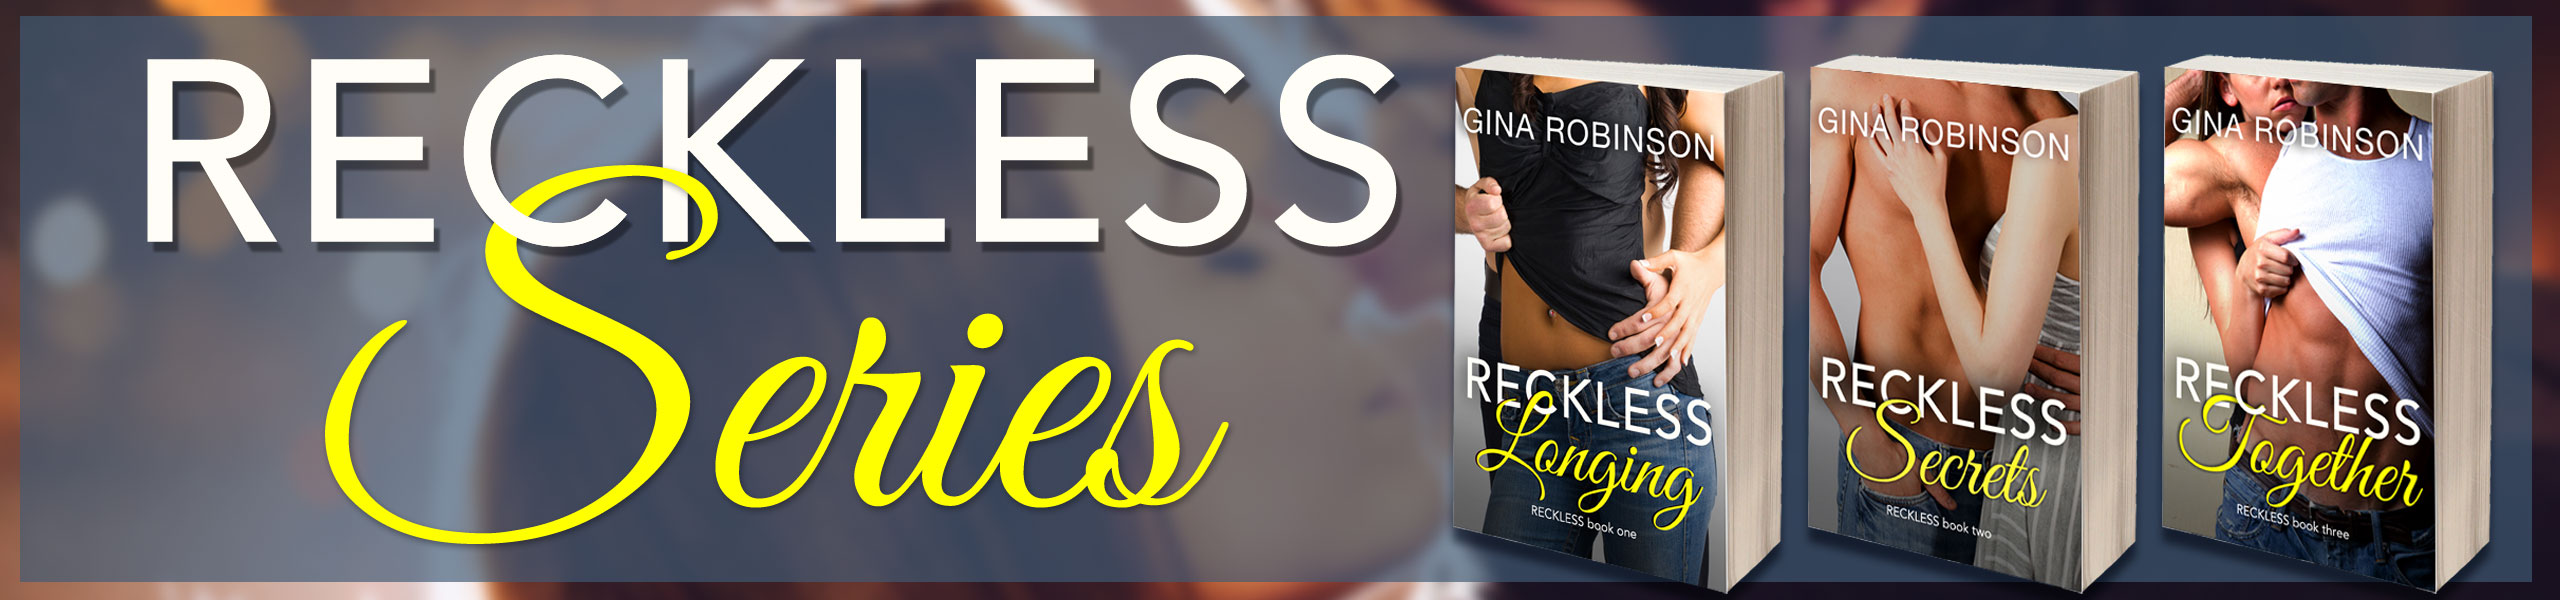 Reckless Series